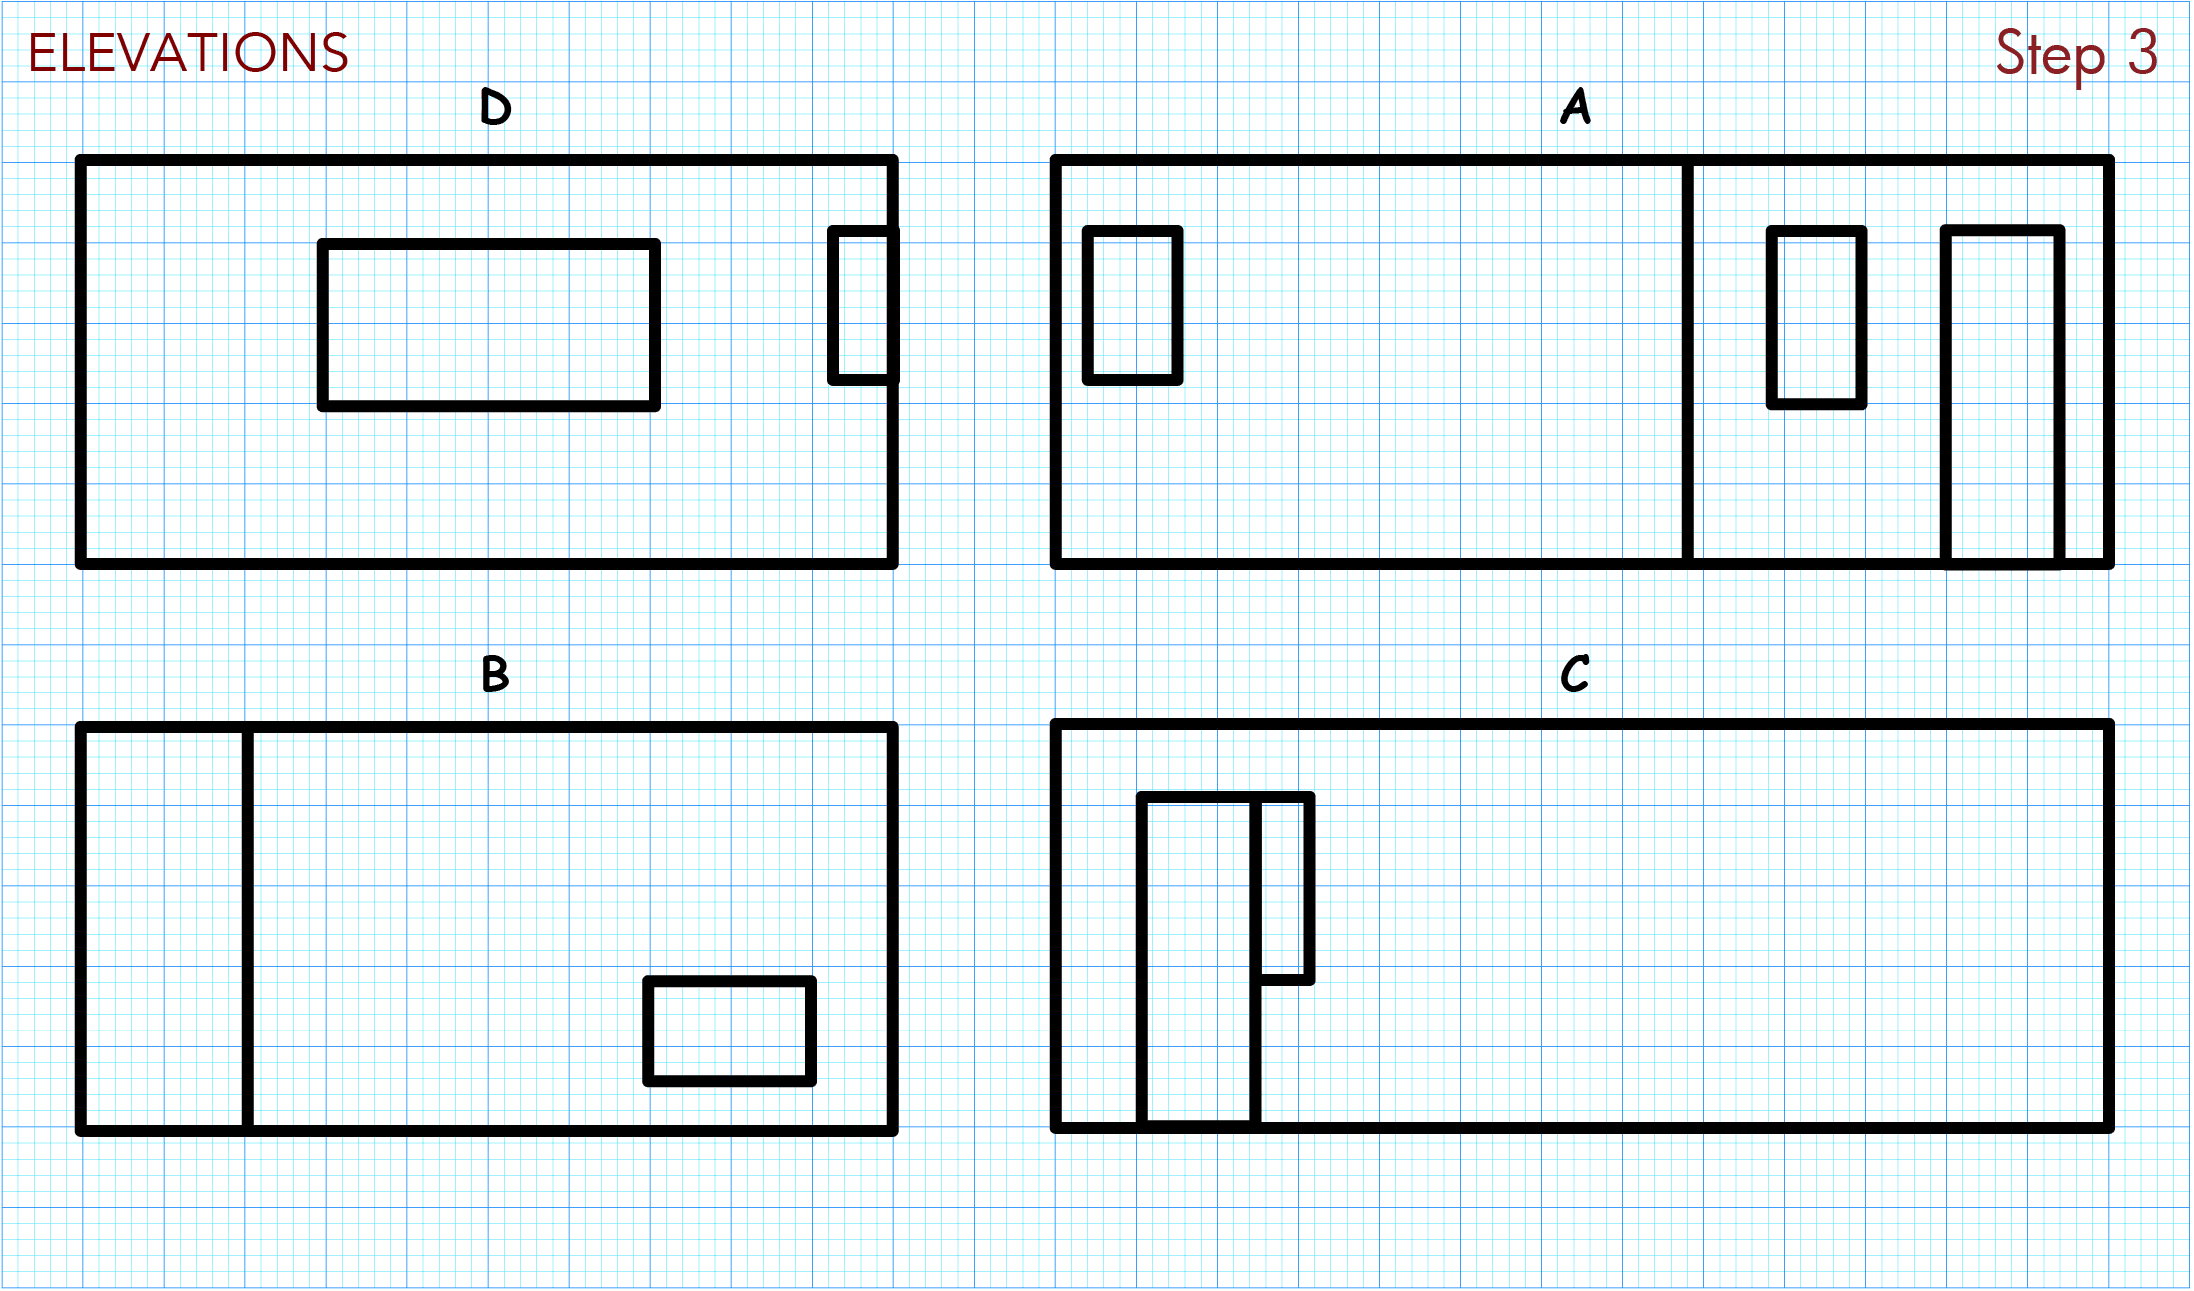 Label each wall to match layout